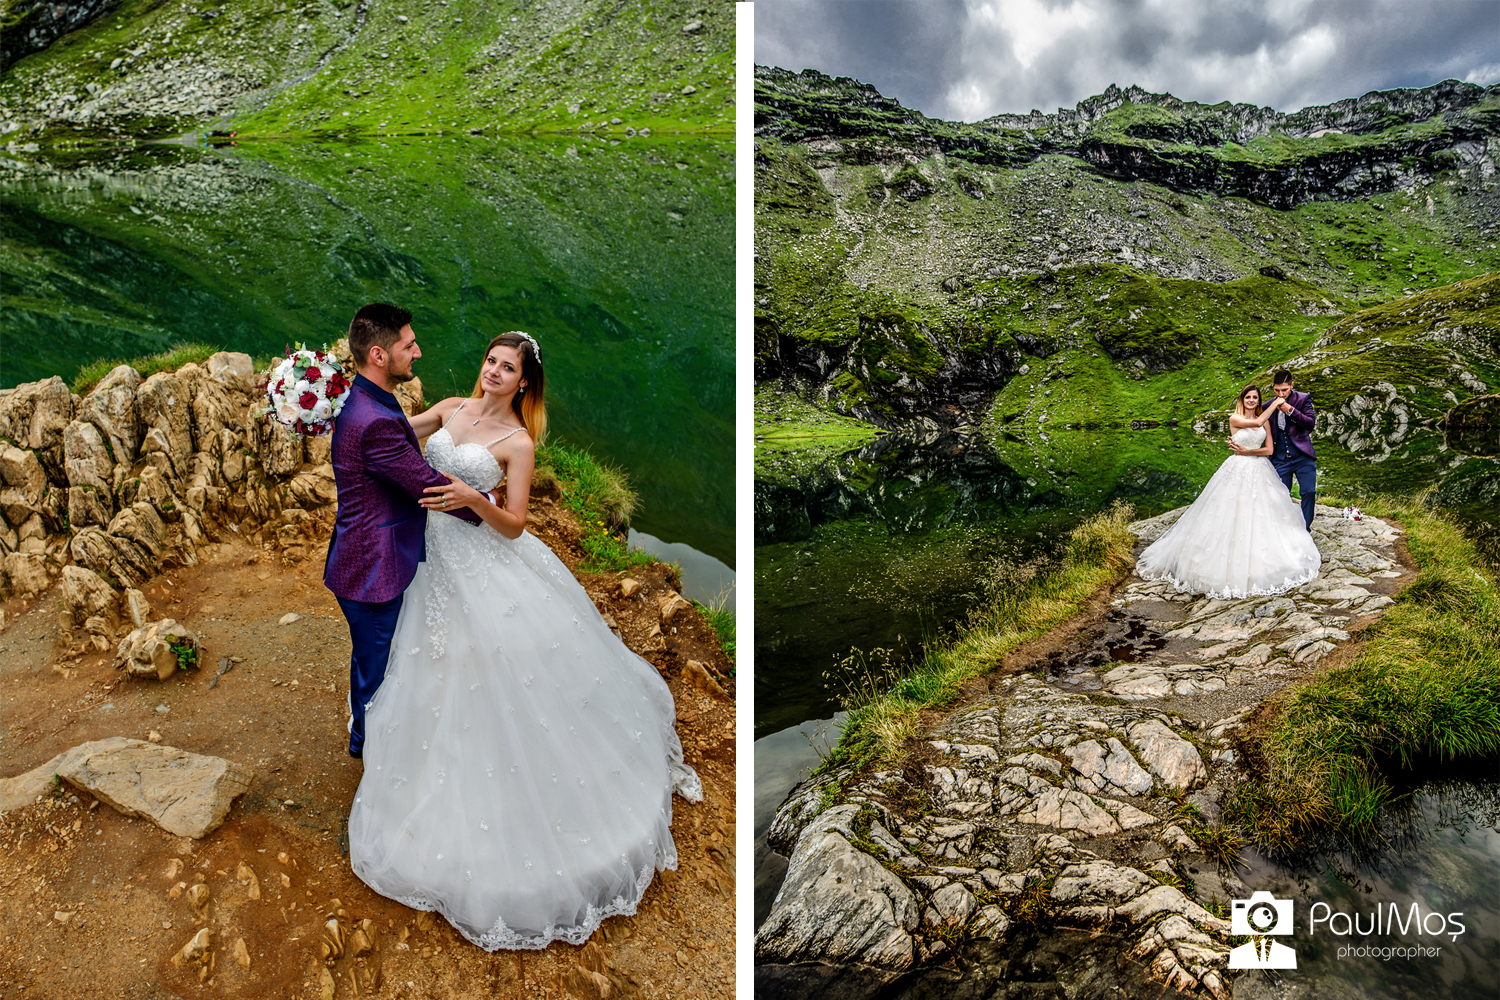 Sedinta Foto Trash the dress - Balea Lac - Transfagarasan